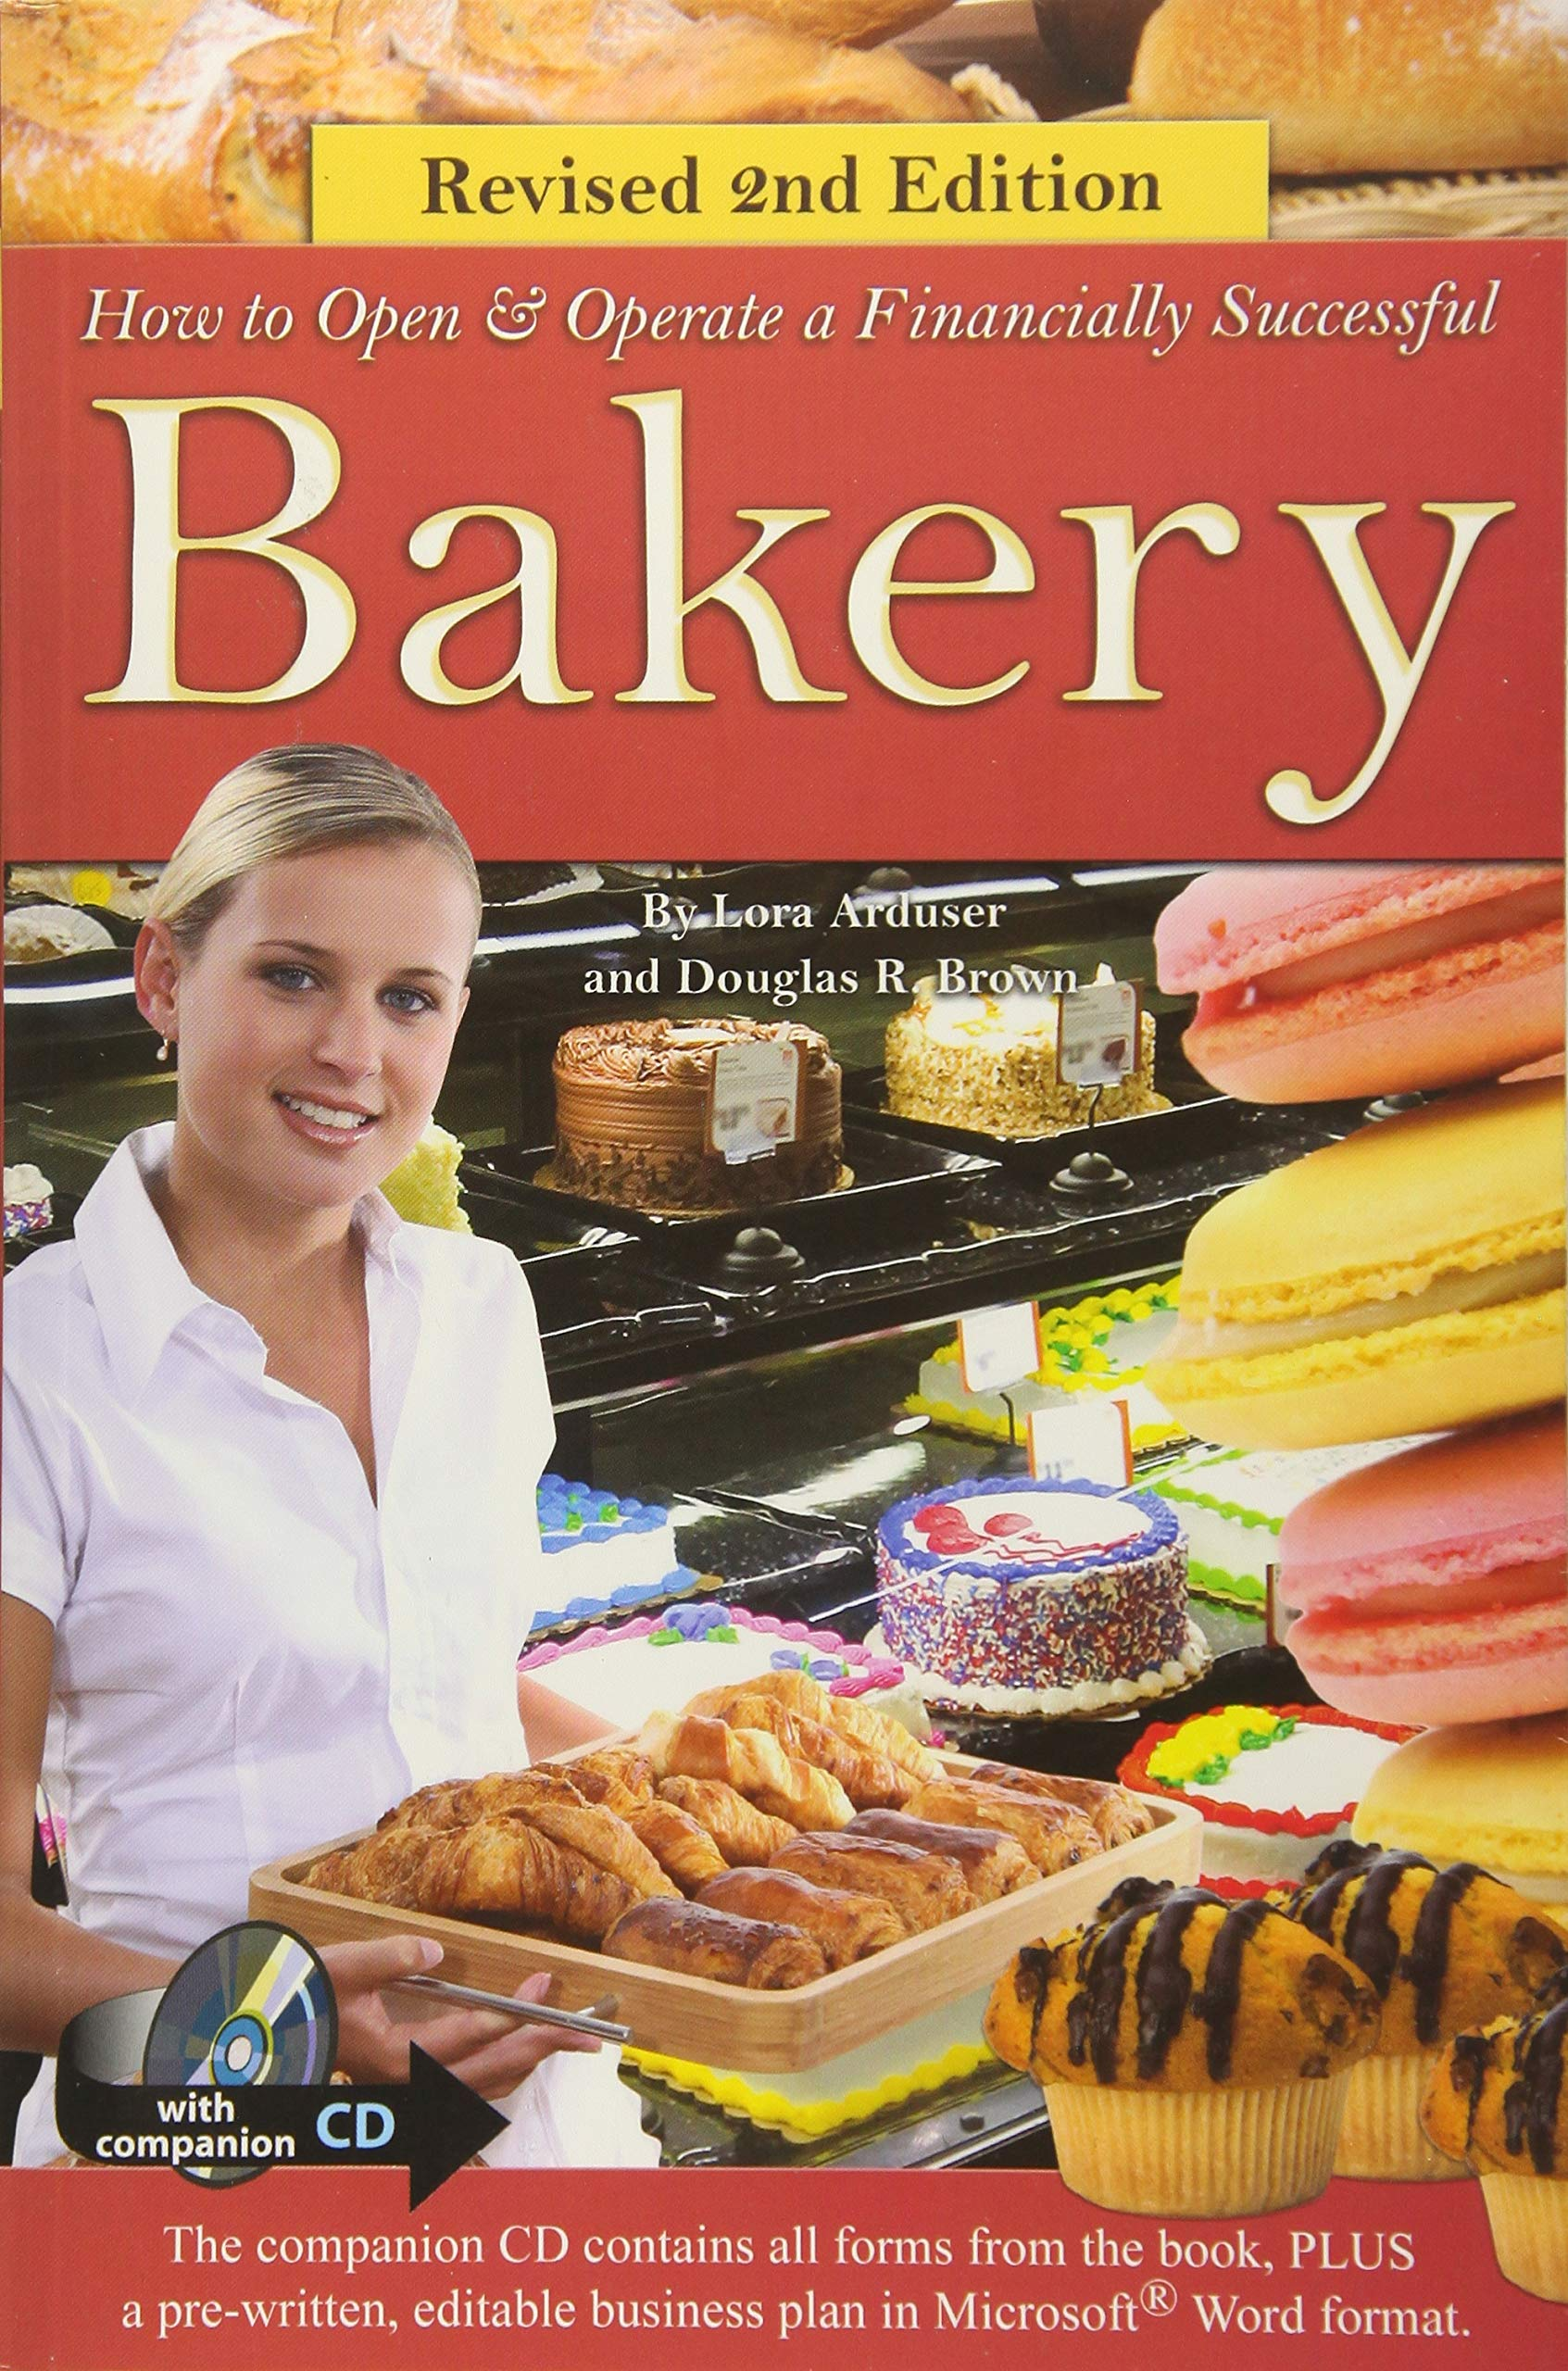 How Open a Financially Successful Bakery: with Companion CD-ROM REVISED 2ND  EDITION (How to Open and Operate a Financially Successful.